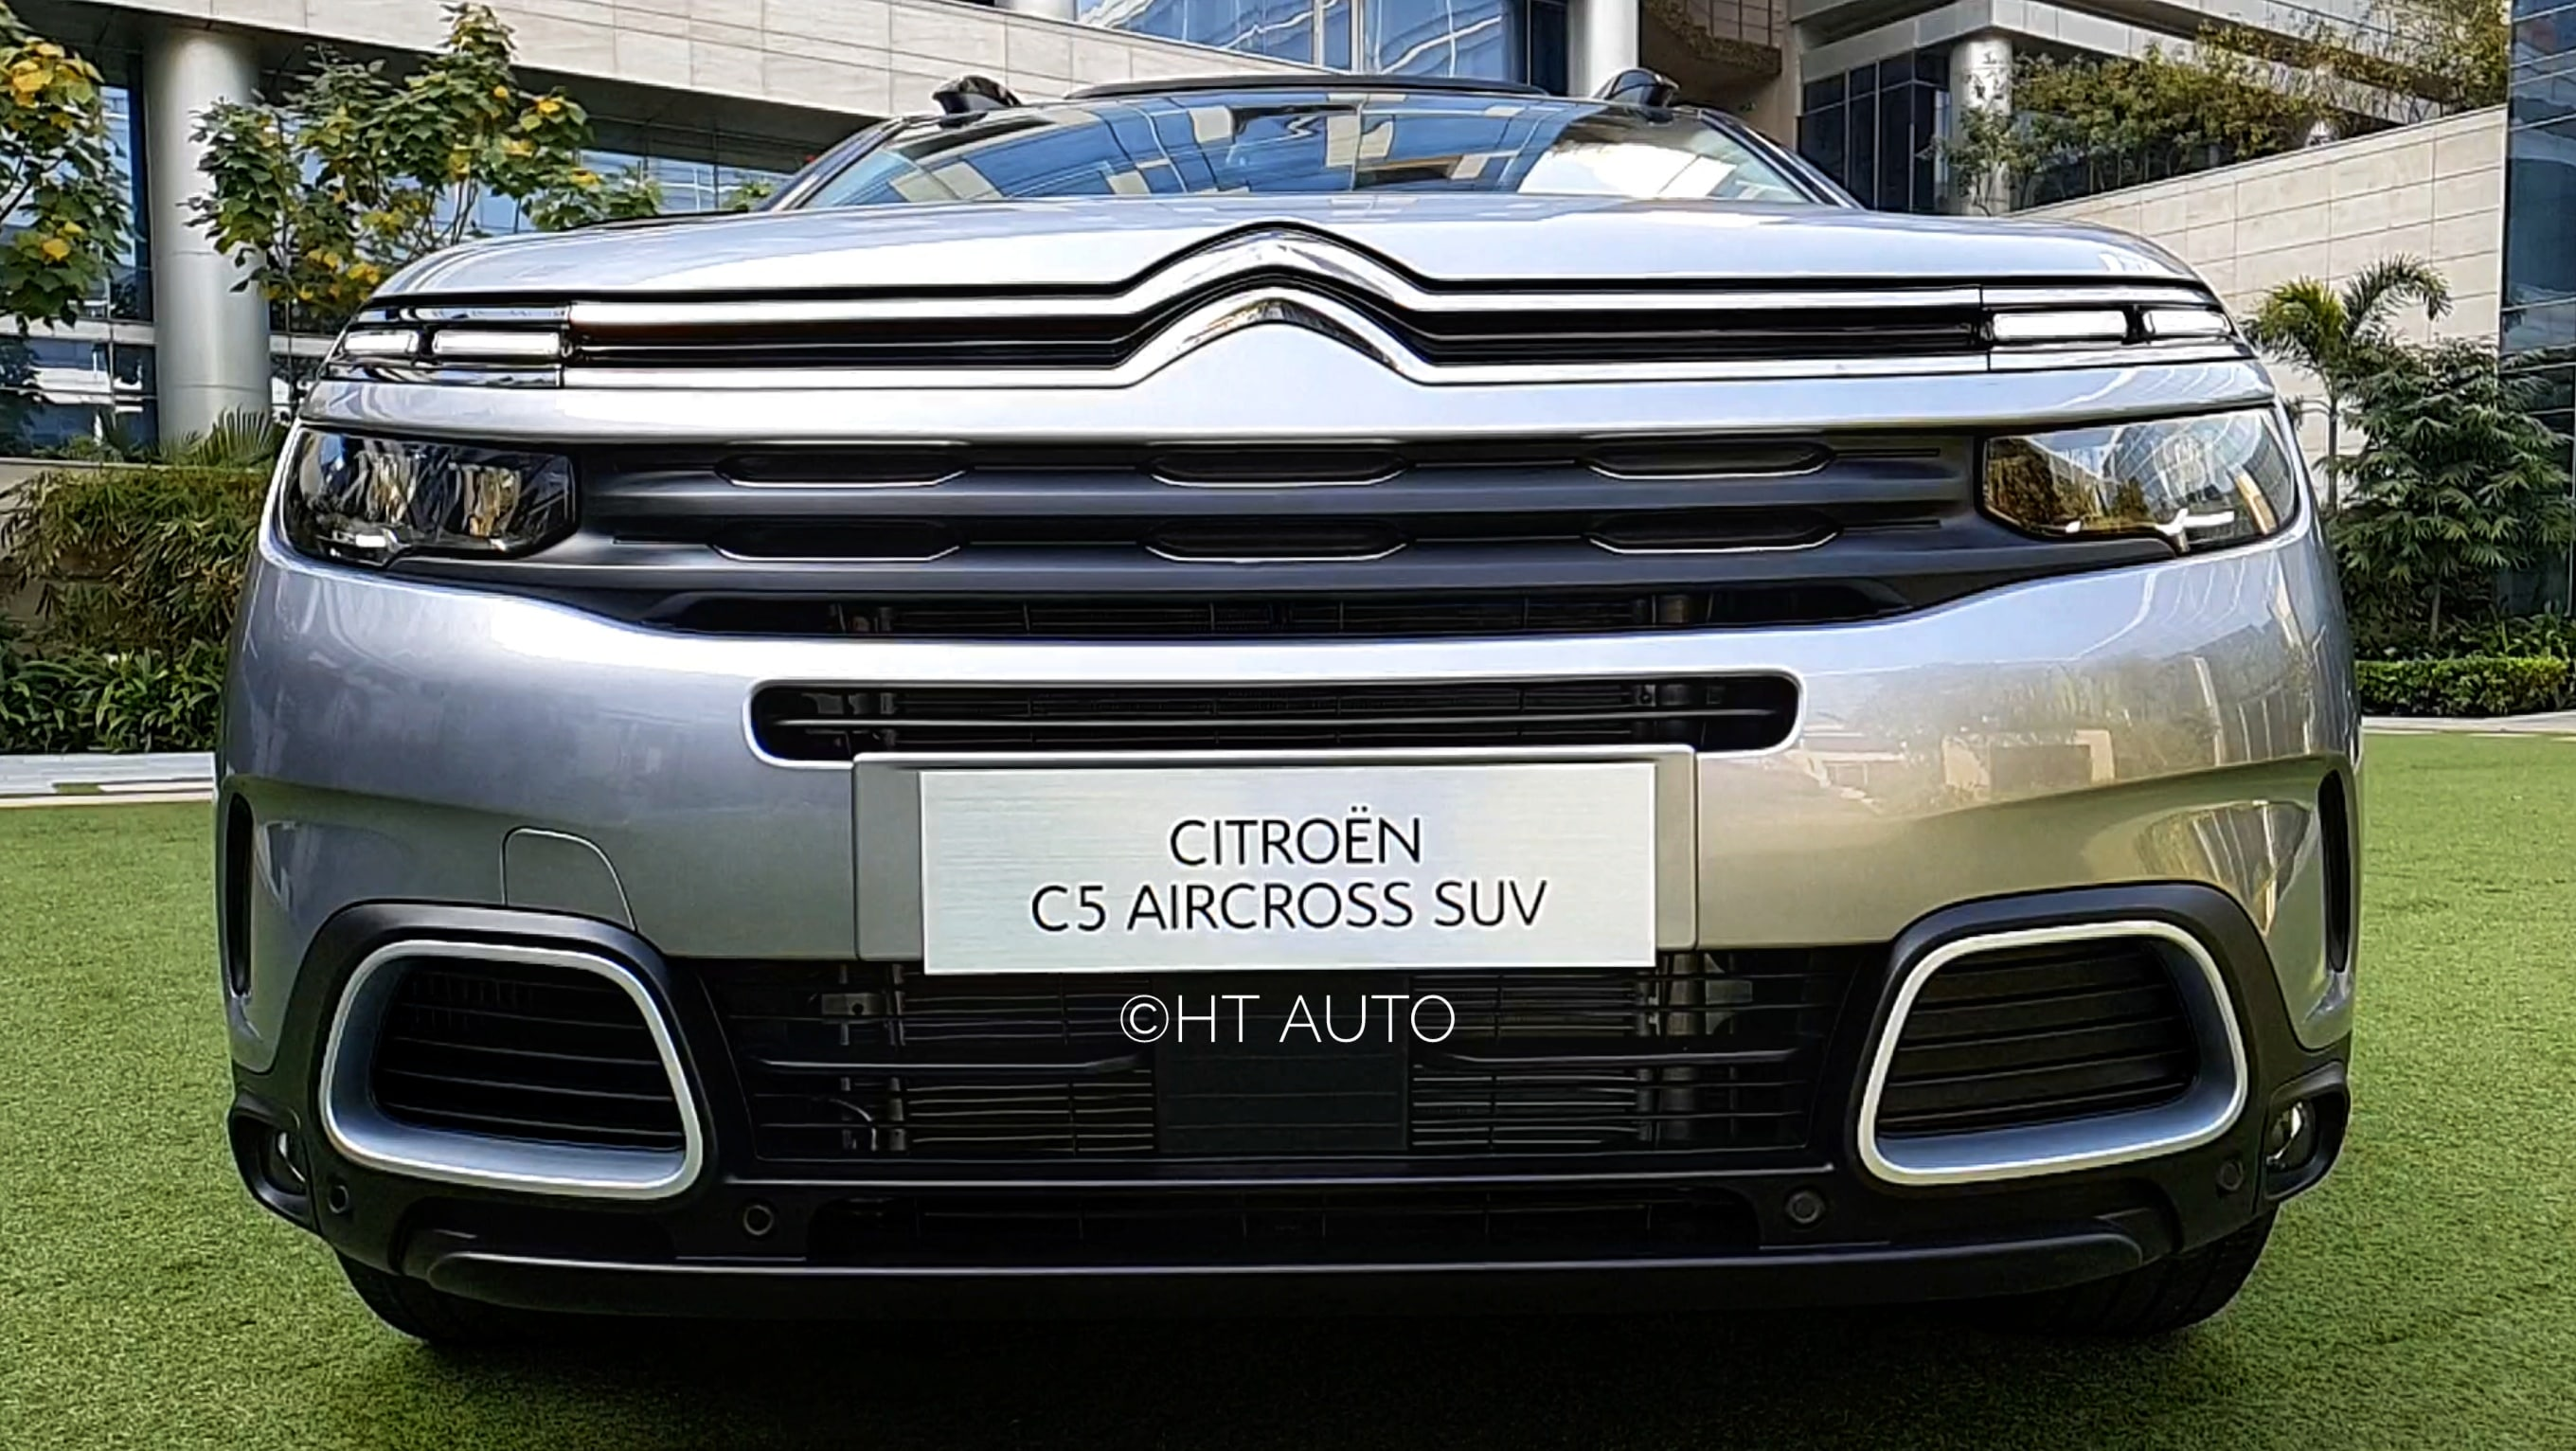 The C5 Aircross has a very distinct, very smart front profile. (HT Auto/Sabyasachi Dasgupta)